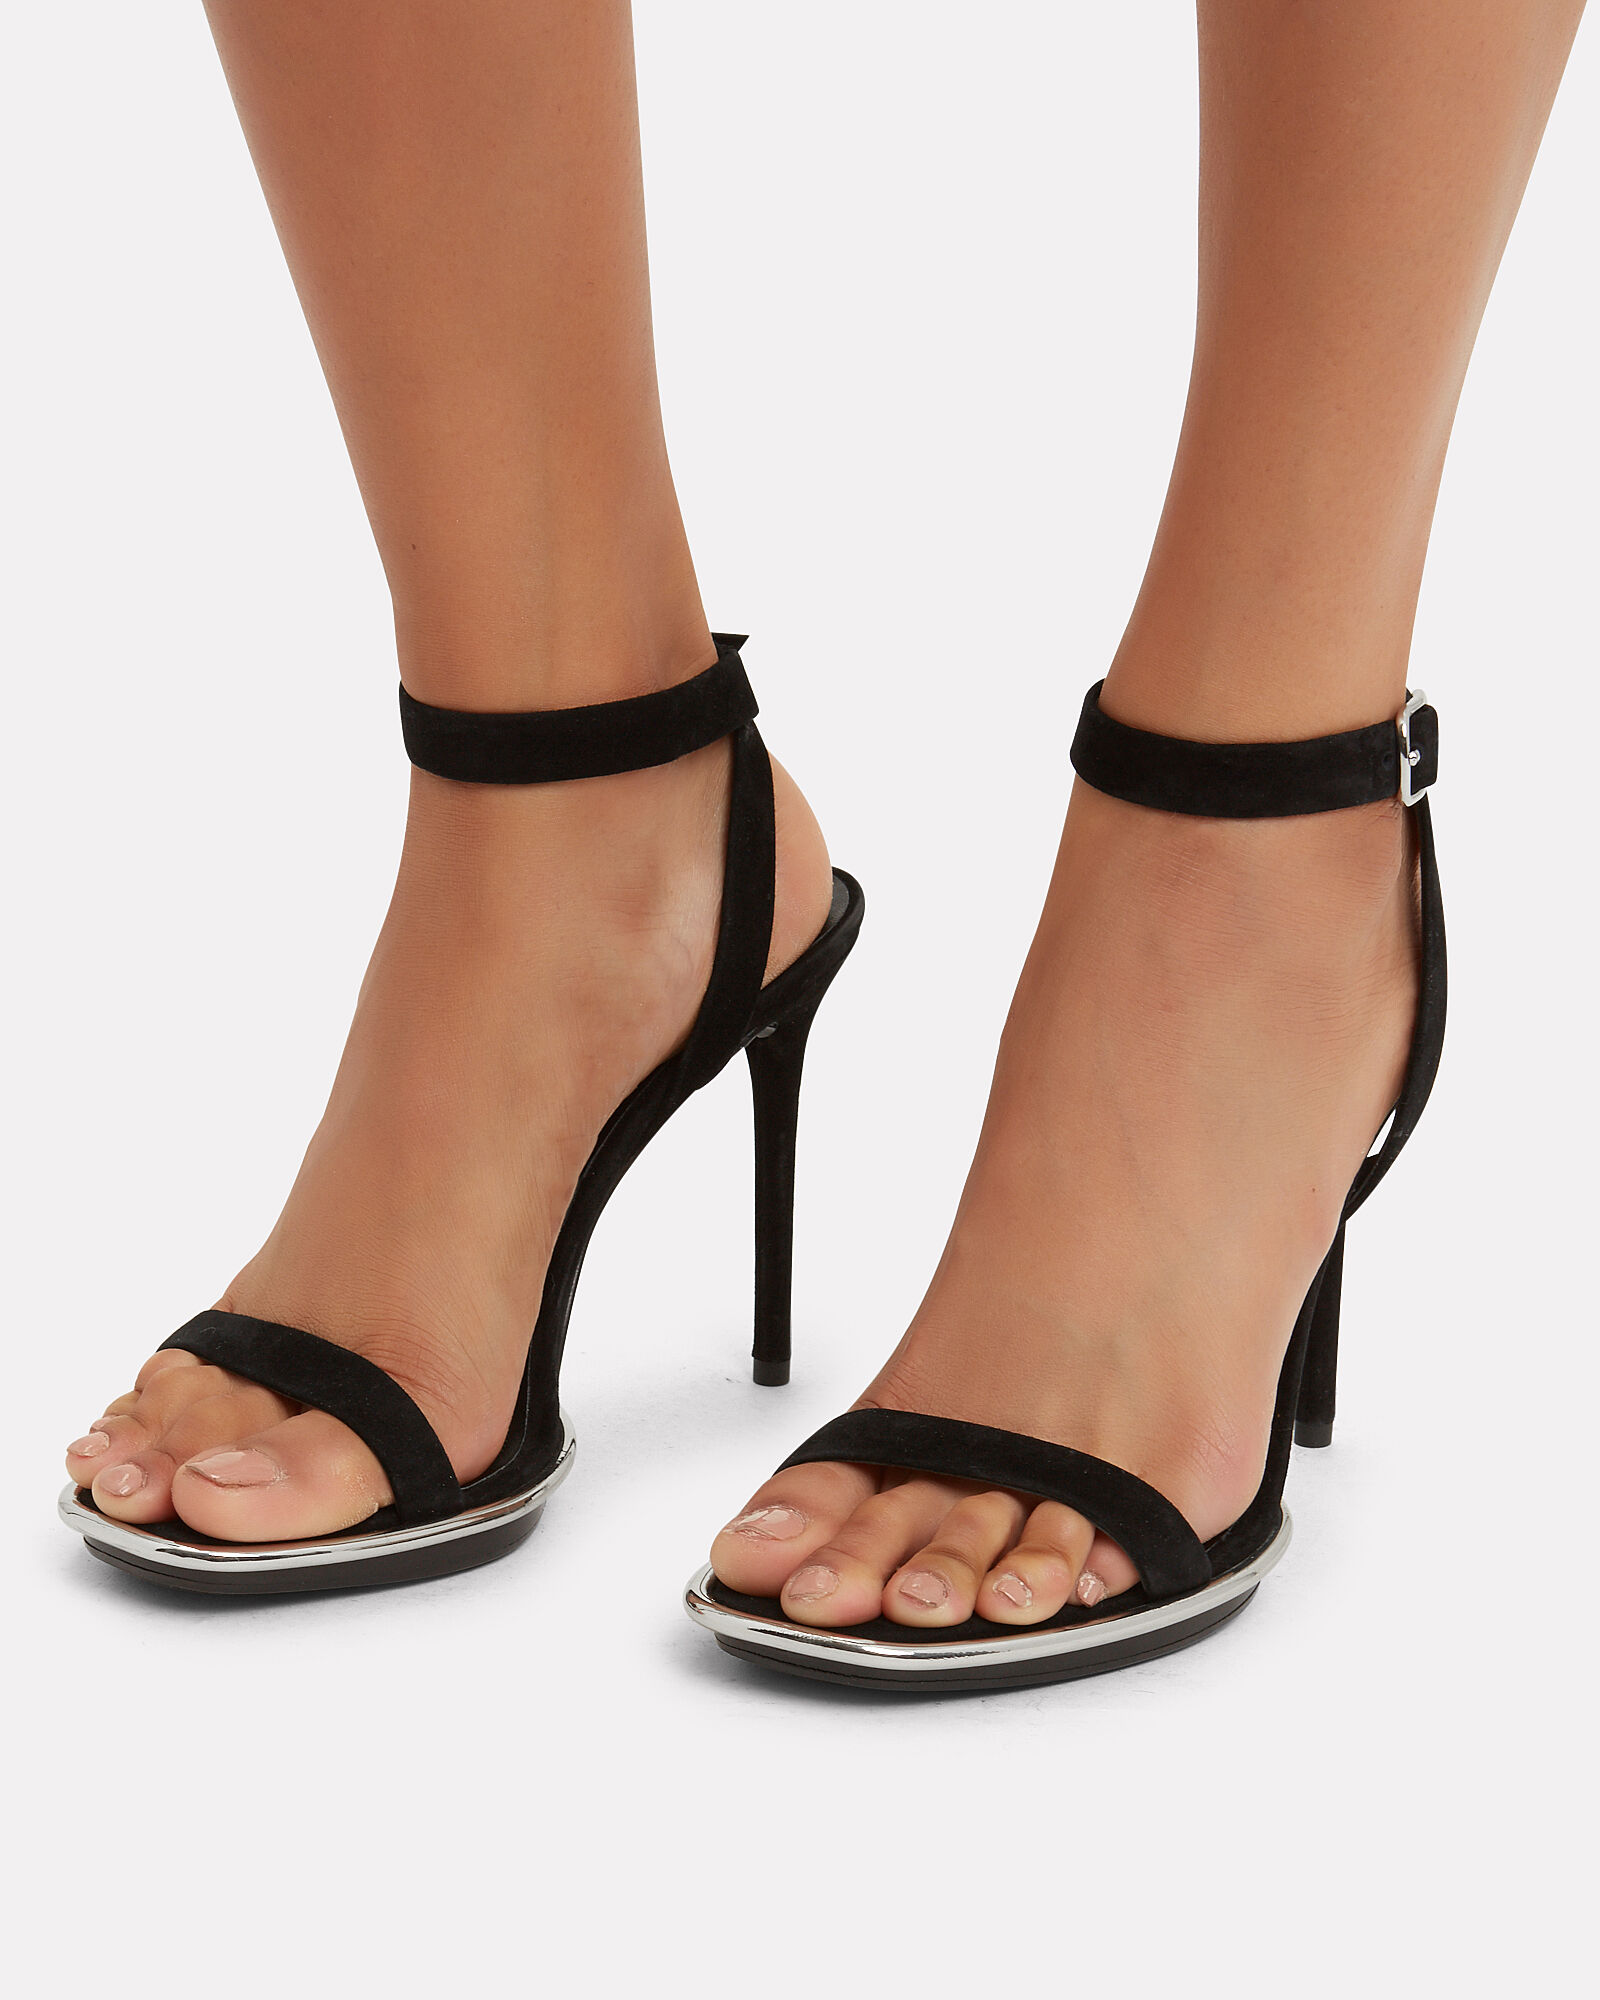 Cady Suede Heeled Sandals, BLACK, hi-res